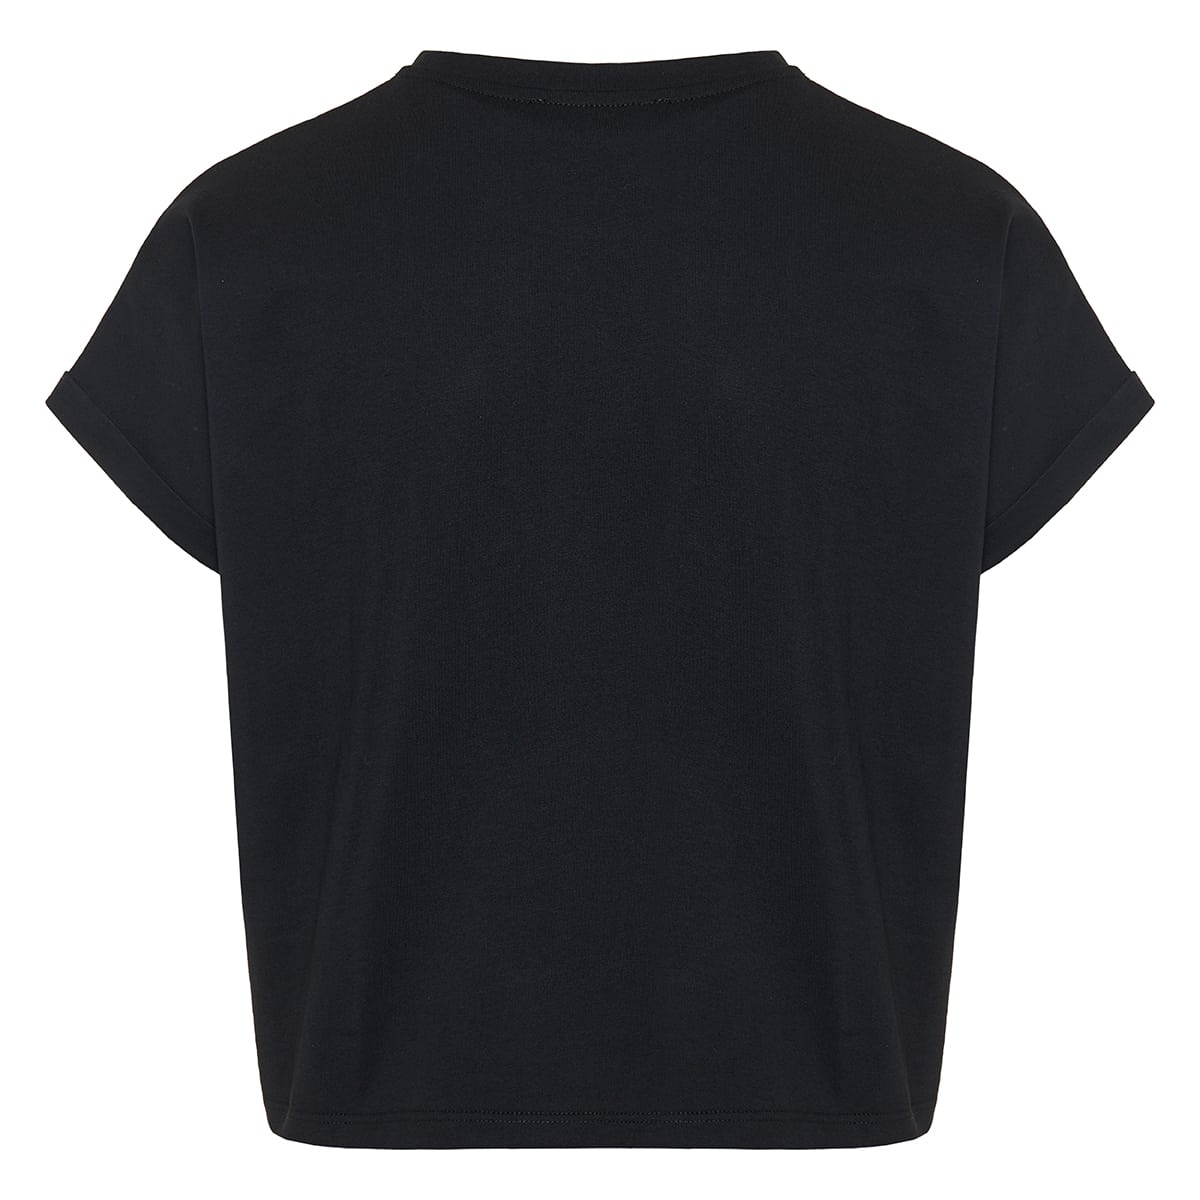 Cropped logo t-shirt